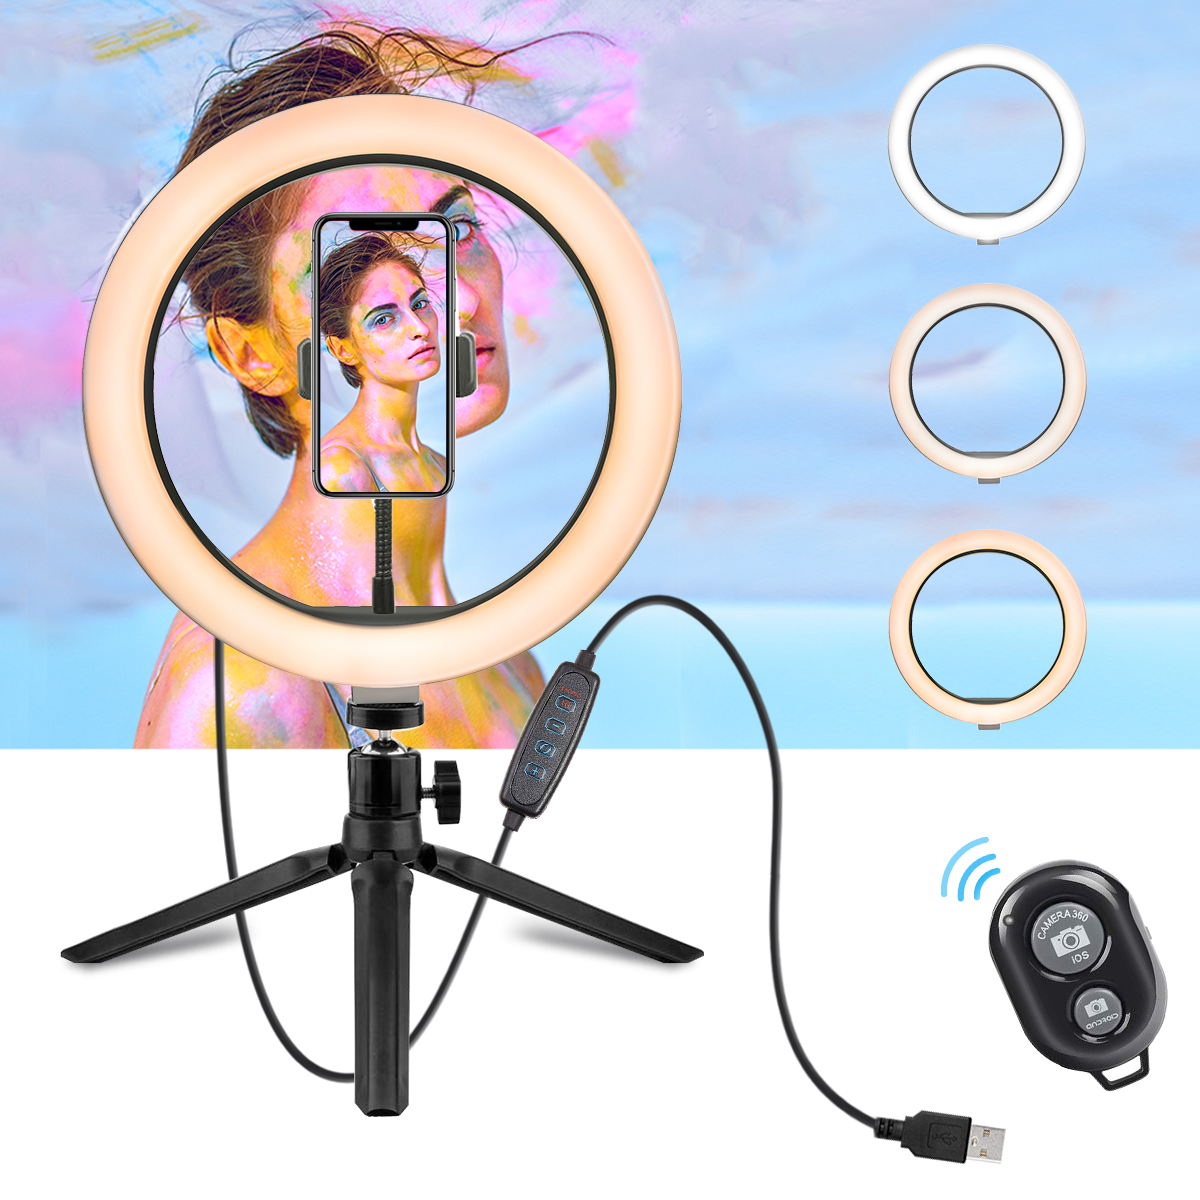 Rovtop 10 Inch Selfie Ring Light with Ring Stand for iPhone Tripod and Phone Holder for Video Photography 8